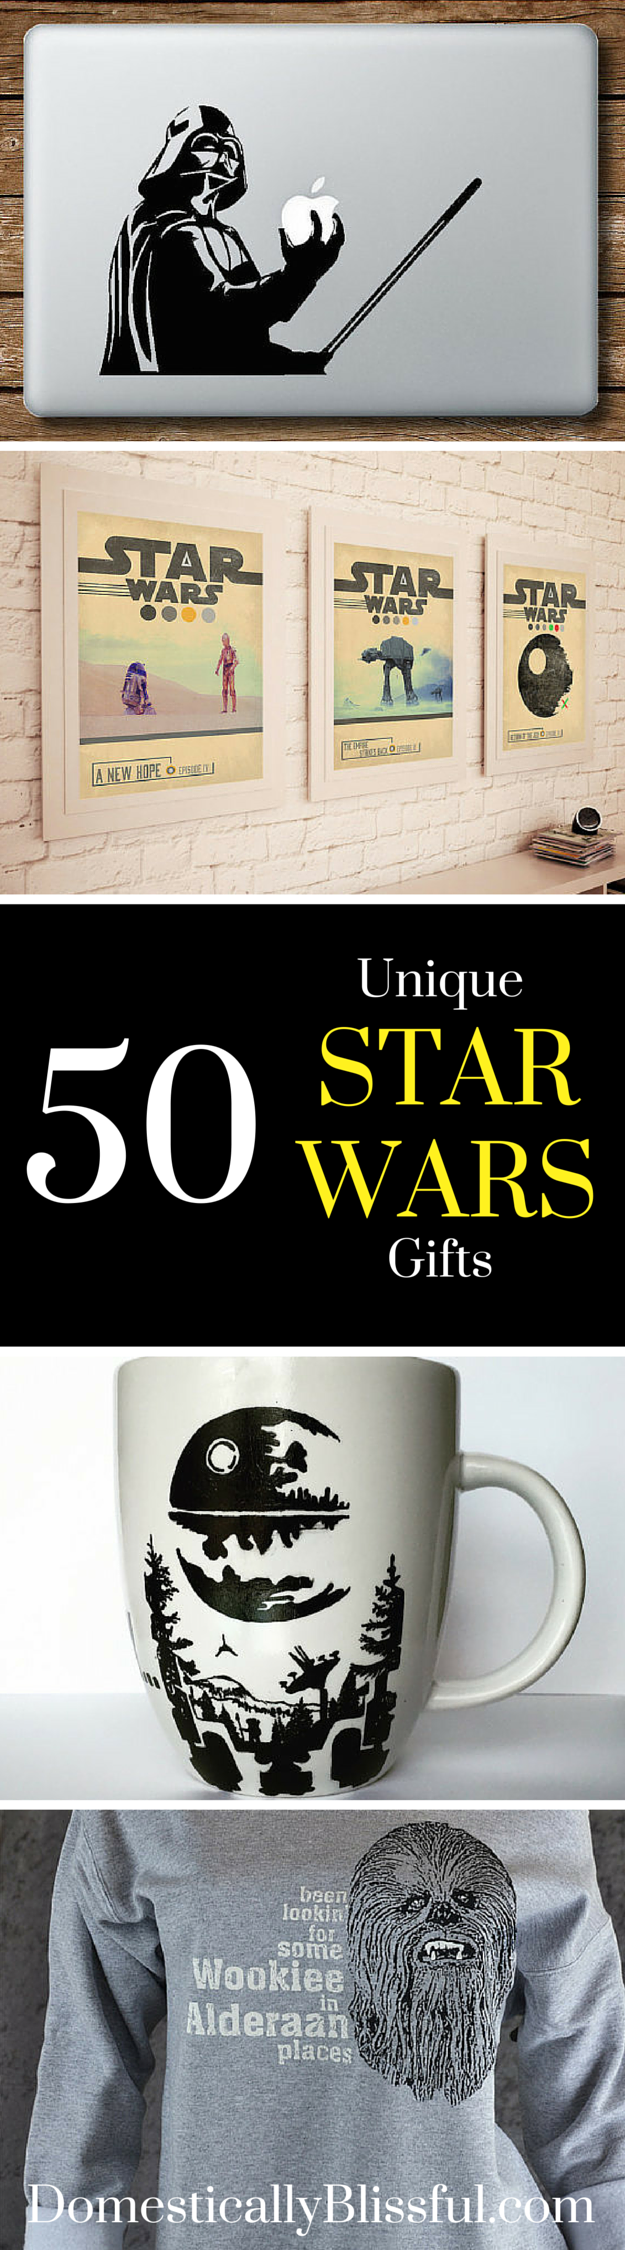 50 Unique Star Wars Gifts any Star Wars fan will love!